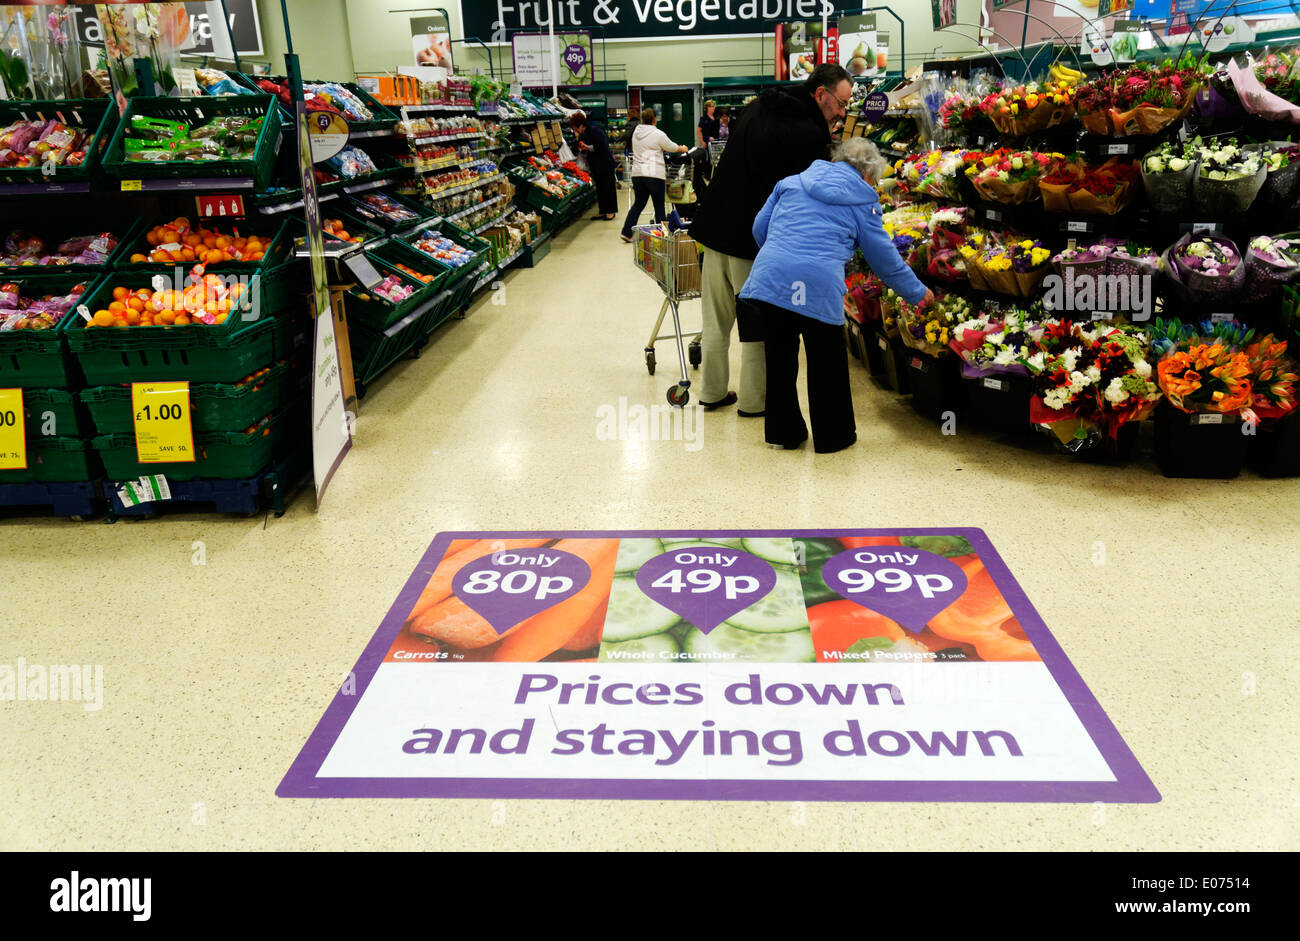 An advert for cheap prices in Tesco supermarket - Stock Image